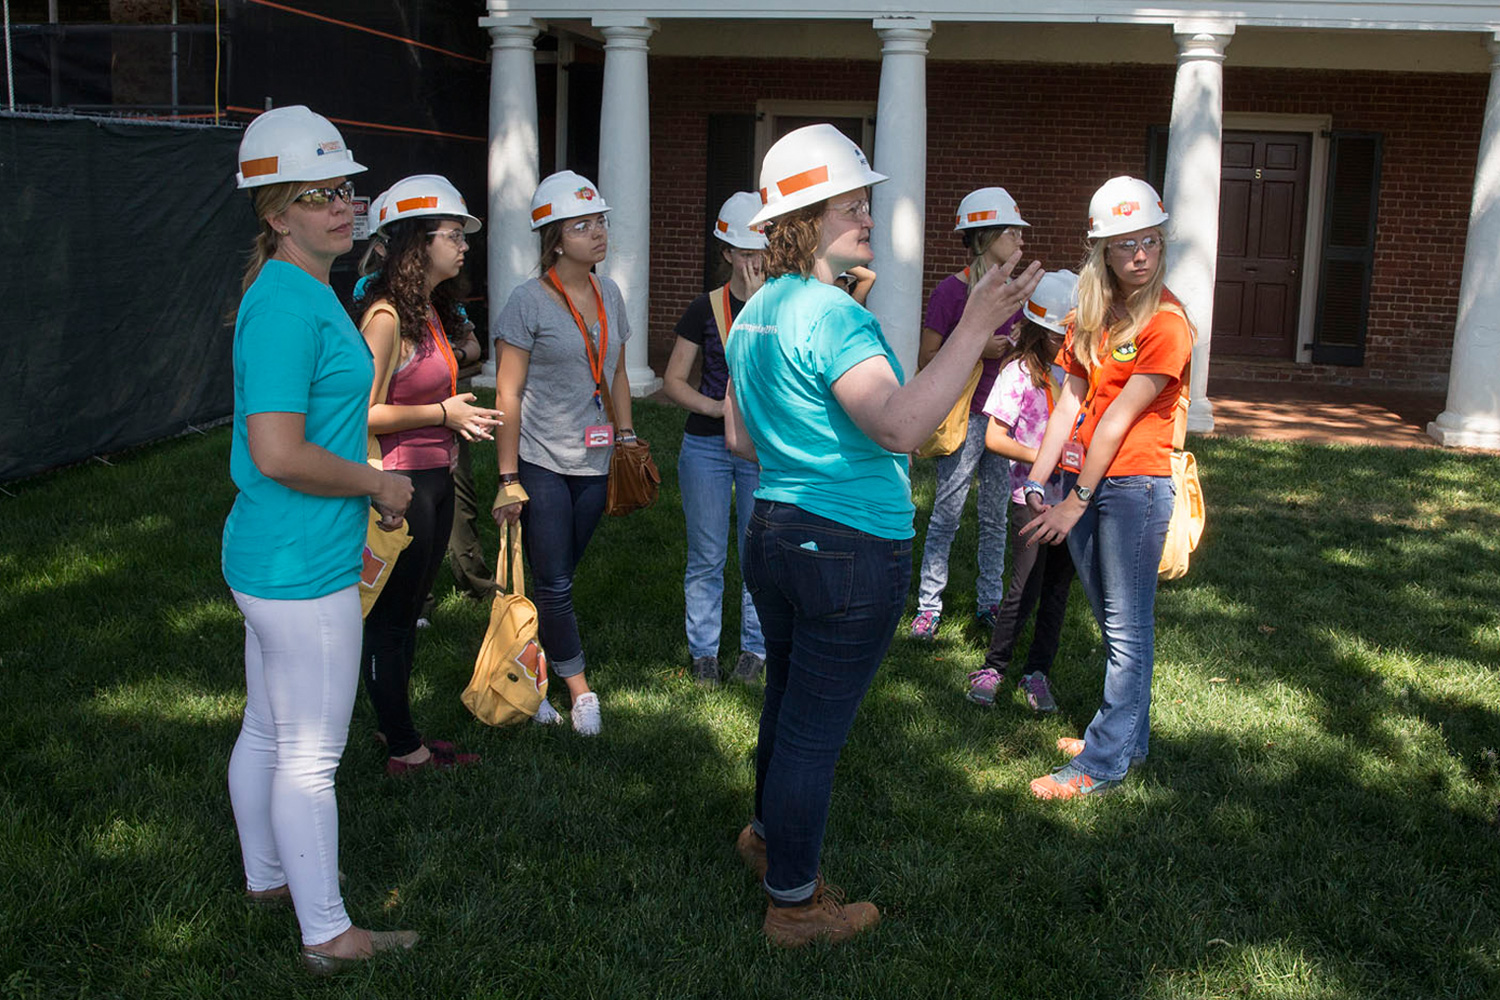 Sarita Herman, center, historic preservation project manager at Facilities Management, takes a group of young women on Grounds for Facilities Management's Girls' Day on a tour of the renovation work being conducted at Hotel A.